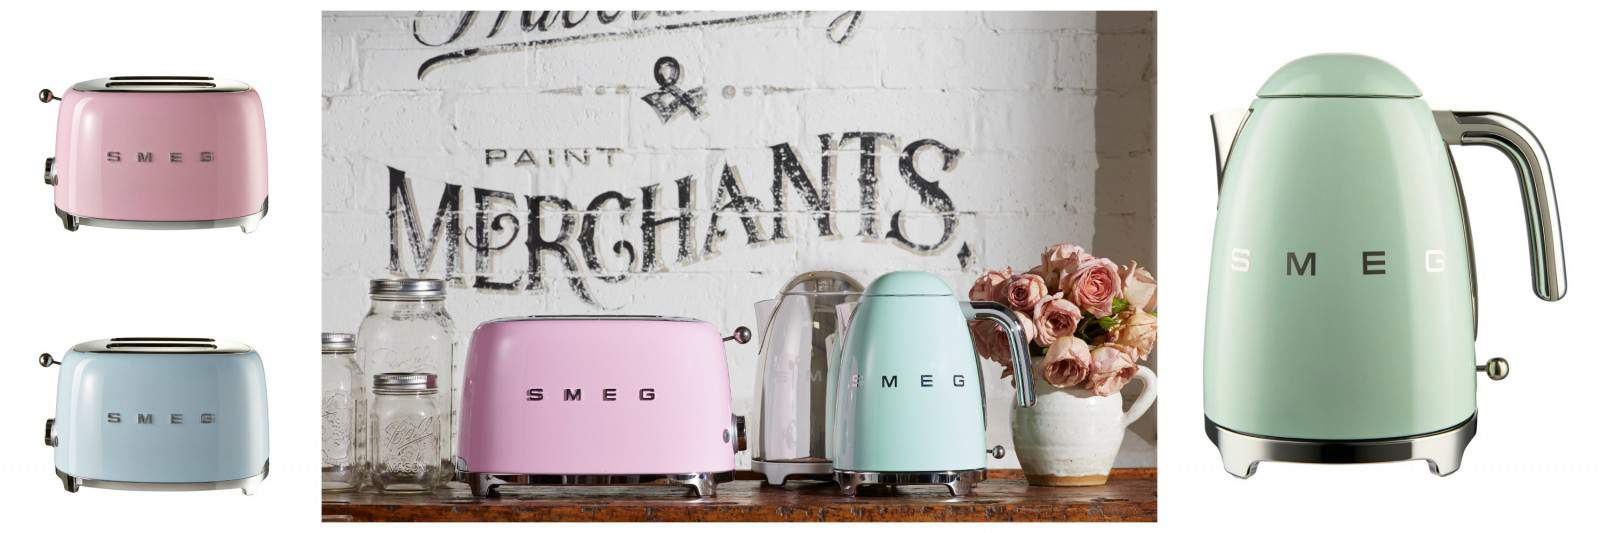 New Small Kitchen Appliances from SMEG - Don\'t Call Me Penny